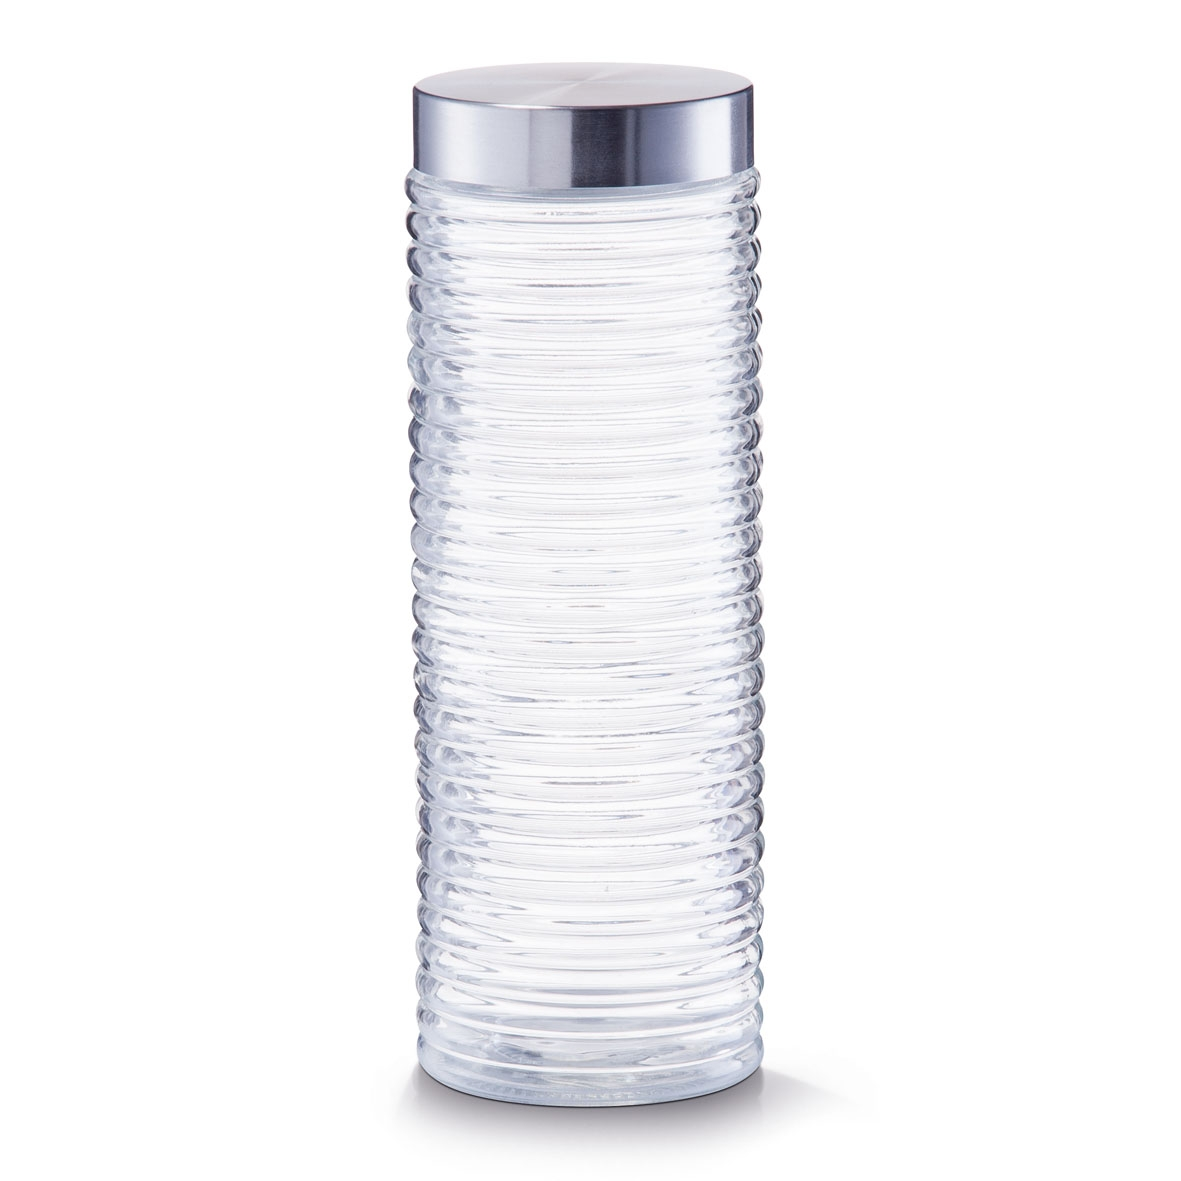 Recipient pentru depozitare Geri, capac inox, Glass 2000 ml, Ø 10,5xH29,5 cm imagine